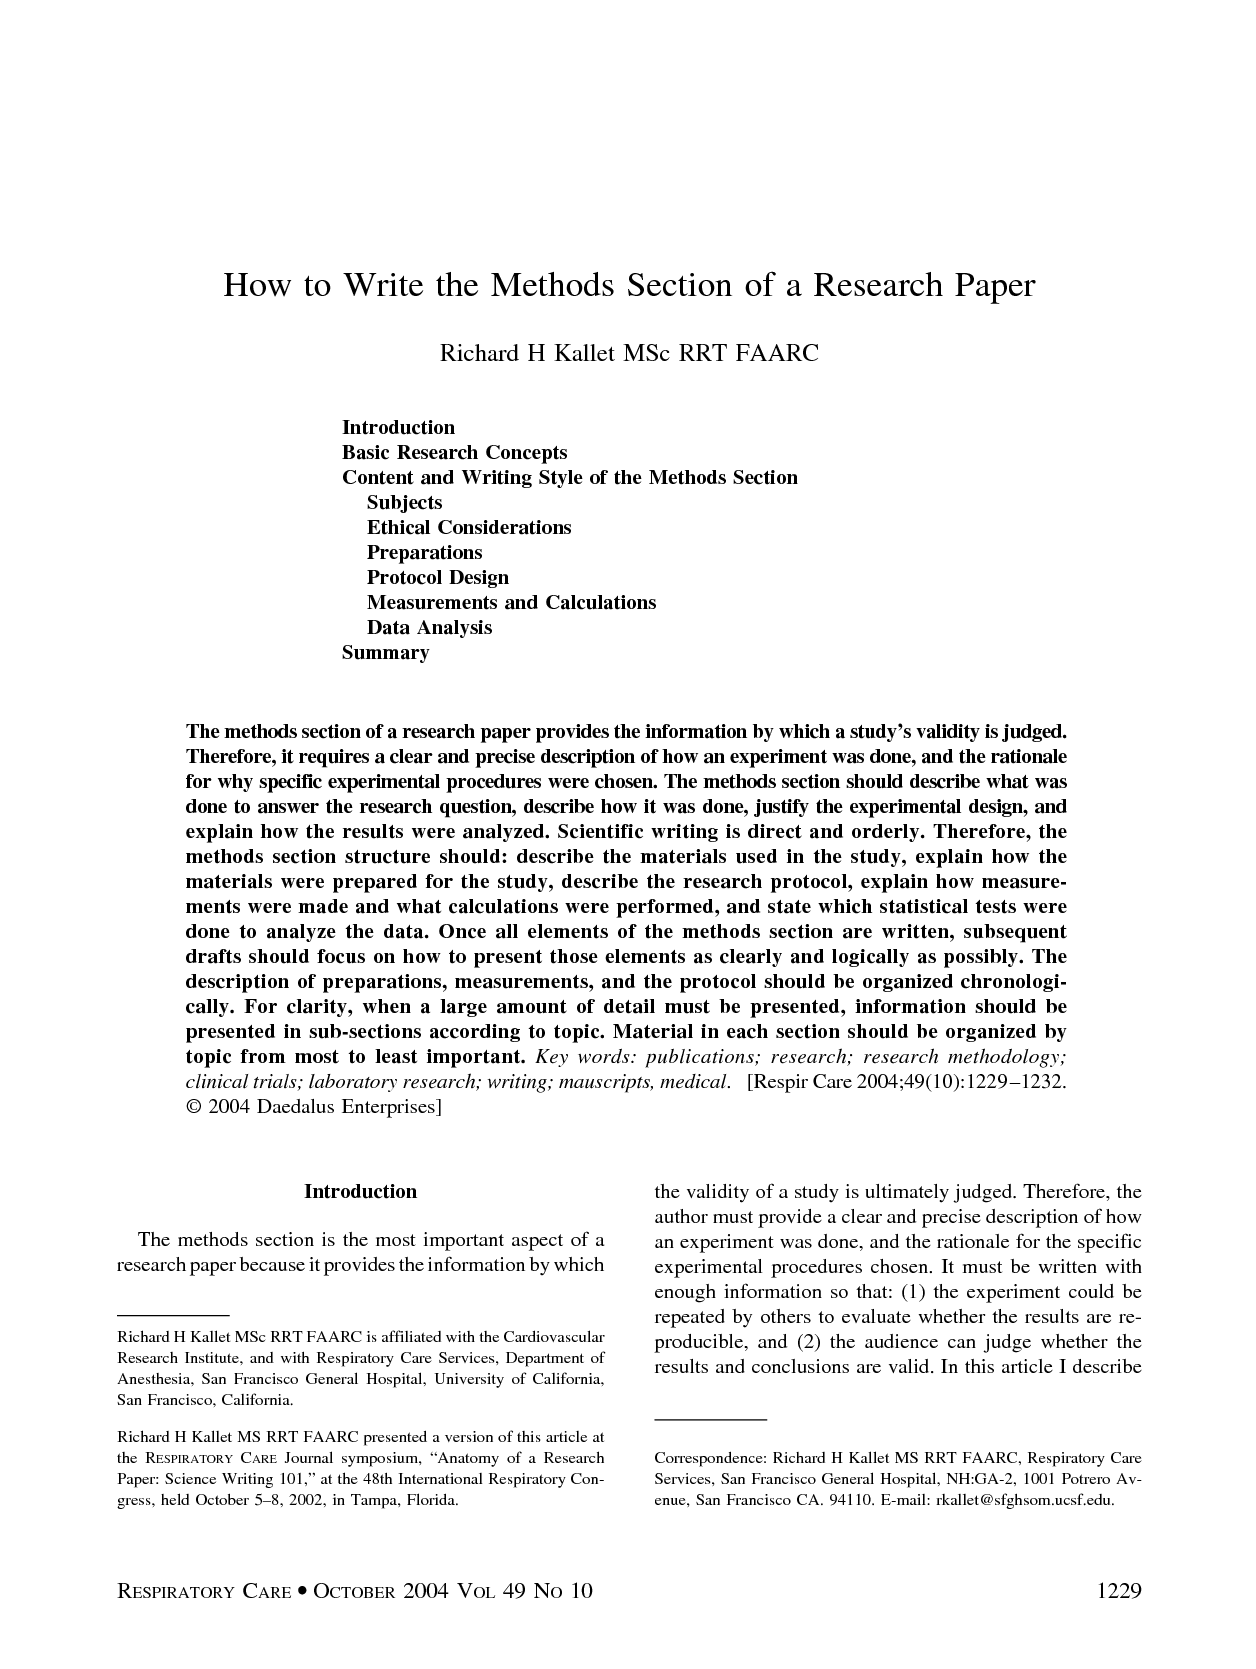 write methodology research paper Writing a research paper this page lists some of the stages involved in writing a library-based research paper although this list suggests that there is a simple, linear process to writing such a paper, the actual process of writing a research paper is often a messy and recursive one, so please use this outline as a flexible guide.